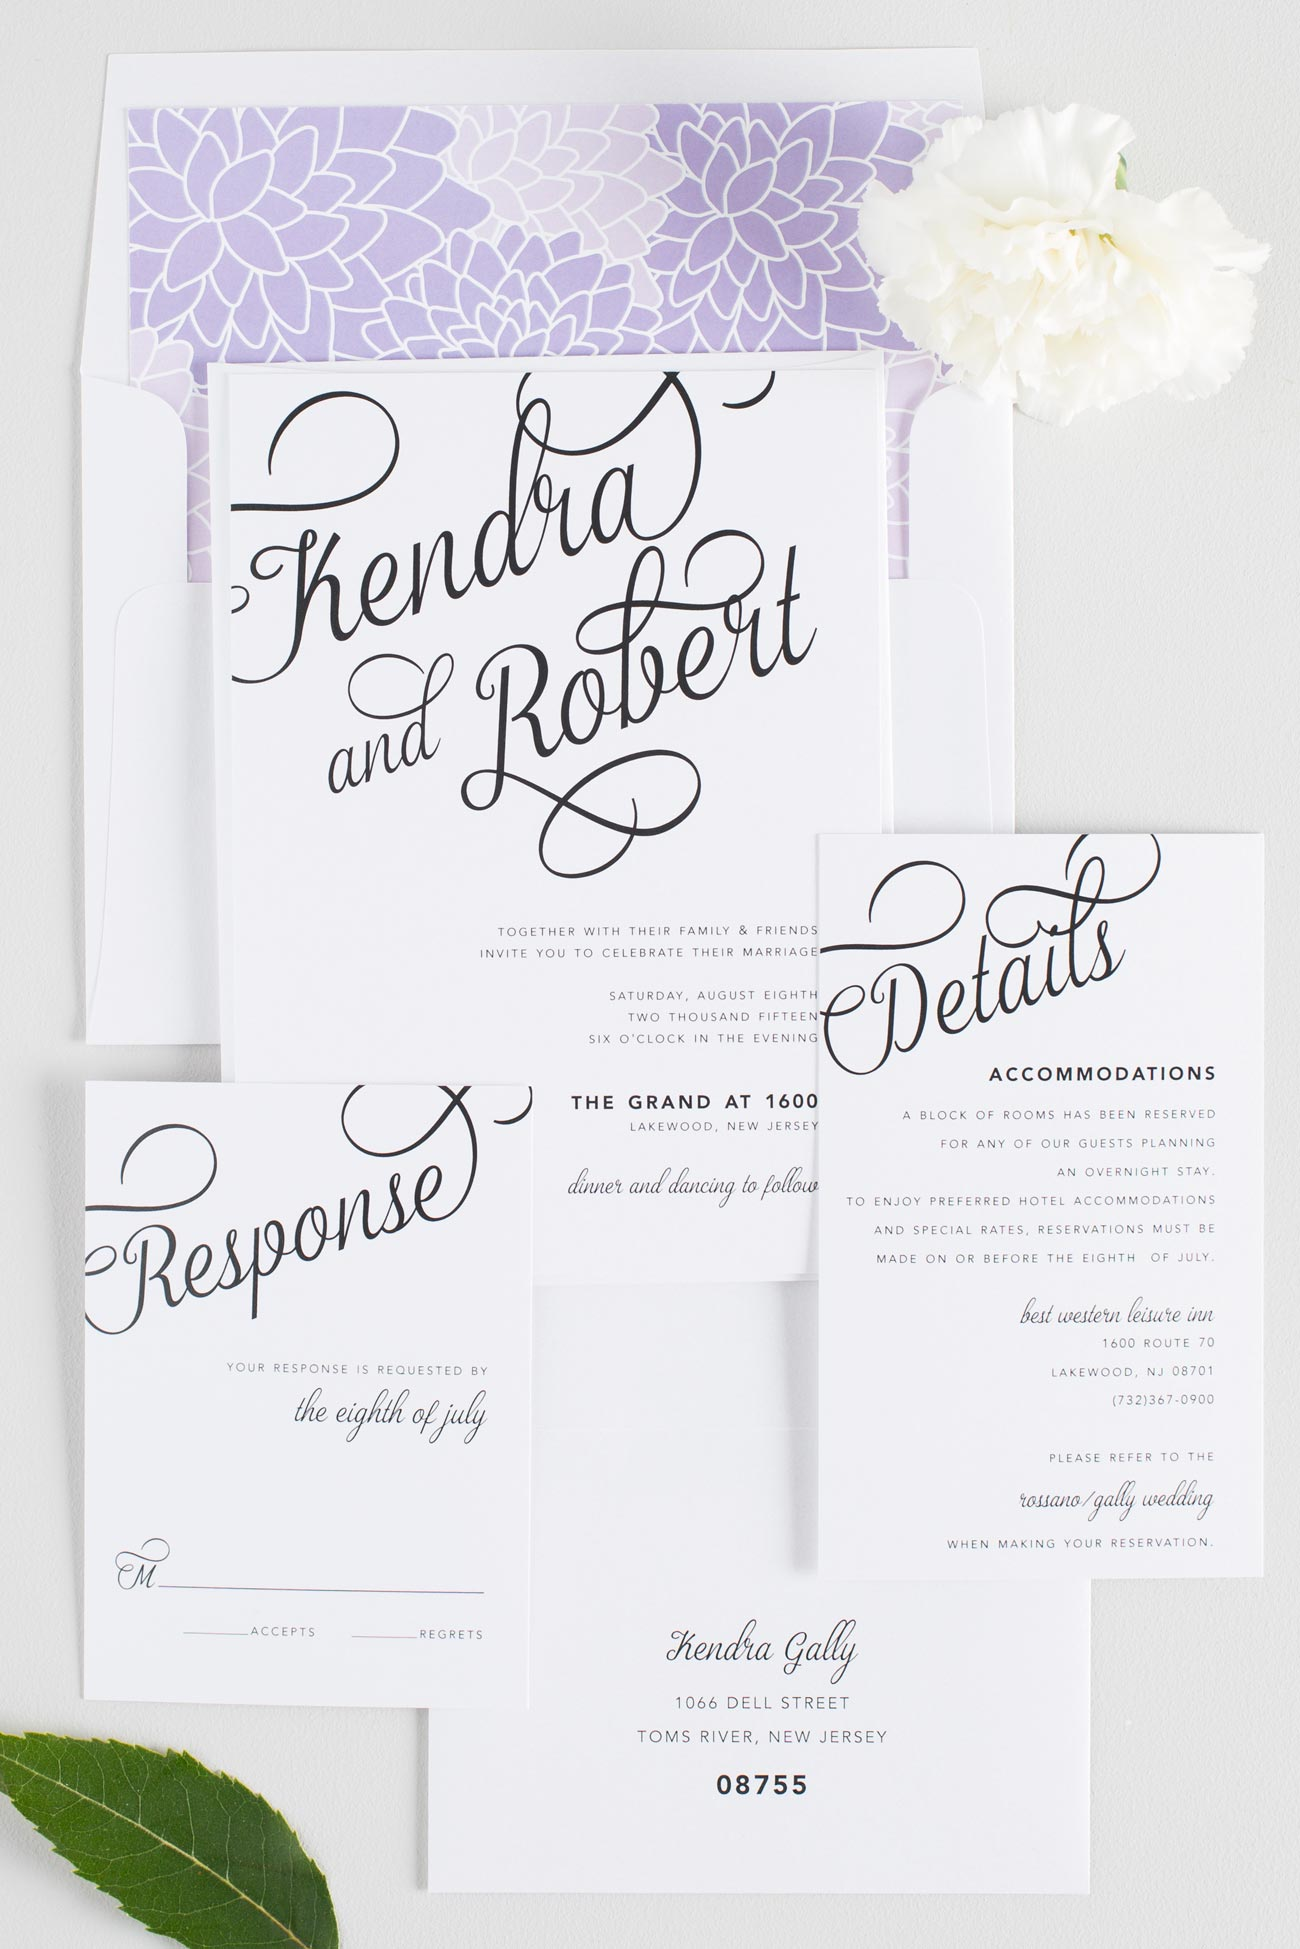 Statement Wedding Invitations with purple floral accents